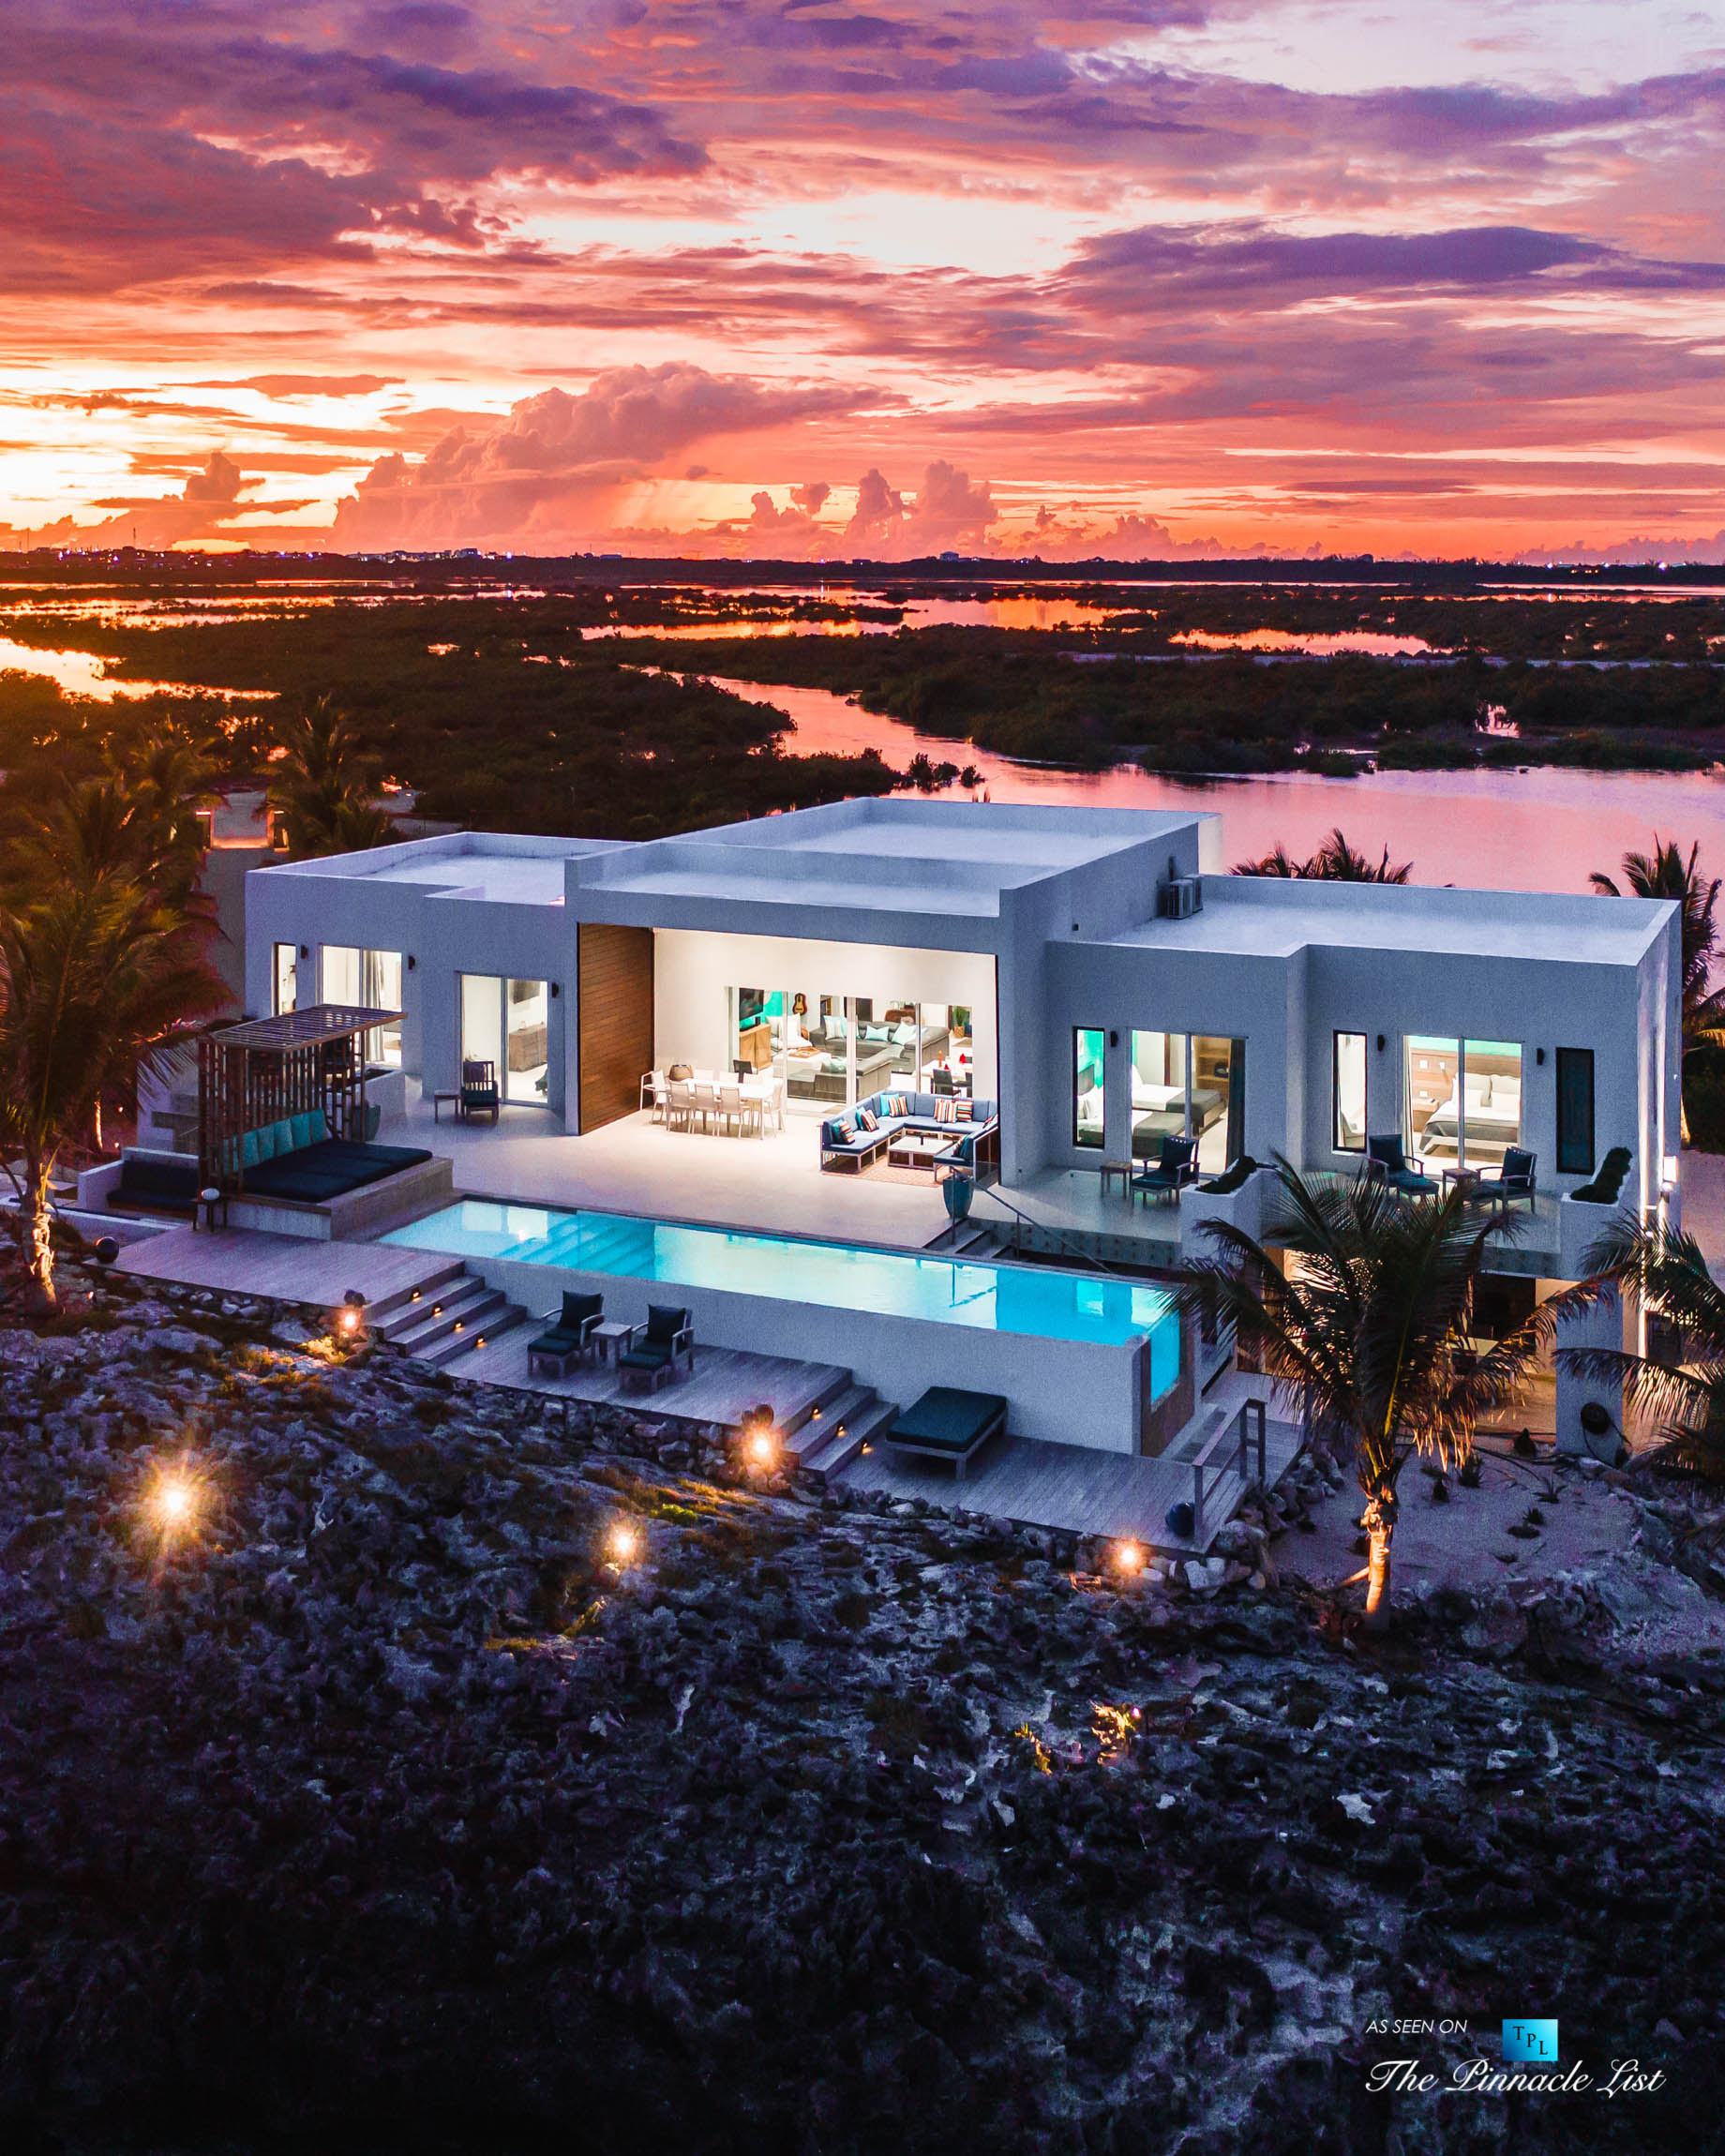 Tip of the Tail Villa - Providenciales, Turks and Caicos Islands - Caribbean Villa Oceanfront Sunset View - Luxury Real Estate - South Shore Peninsula Home